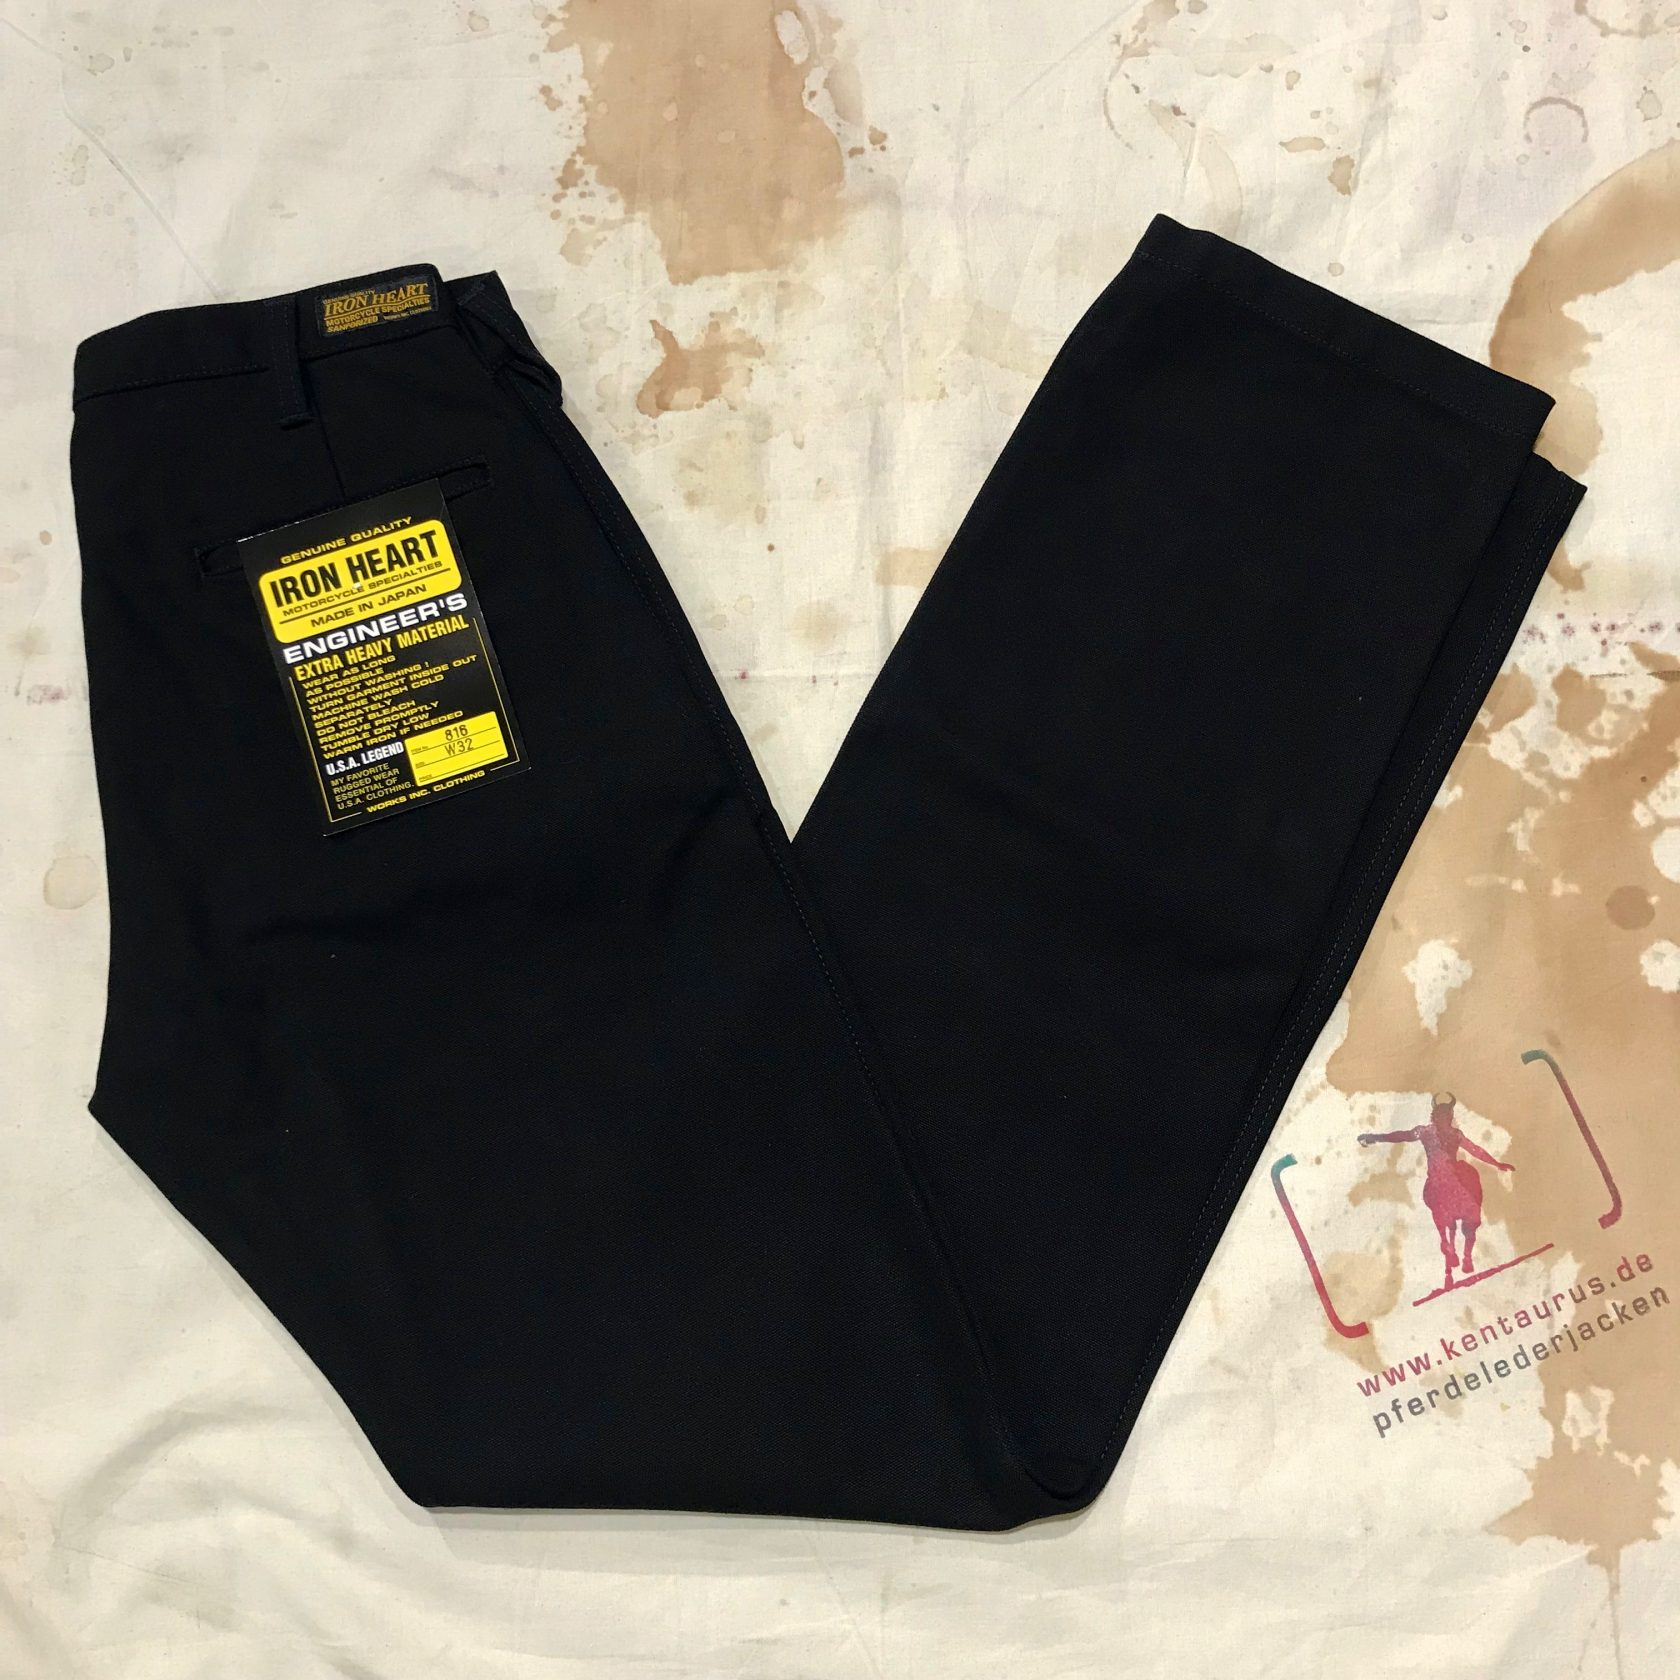 IH-816 BLK 17oz cotton work pants black